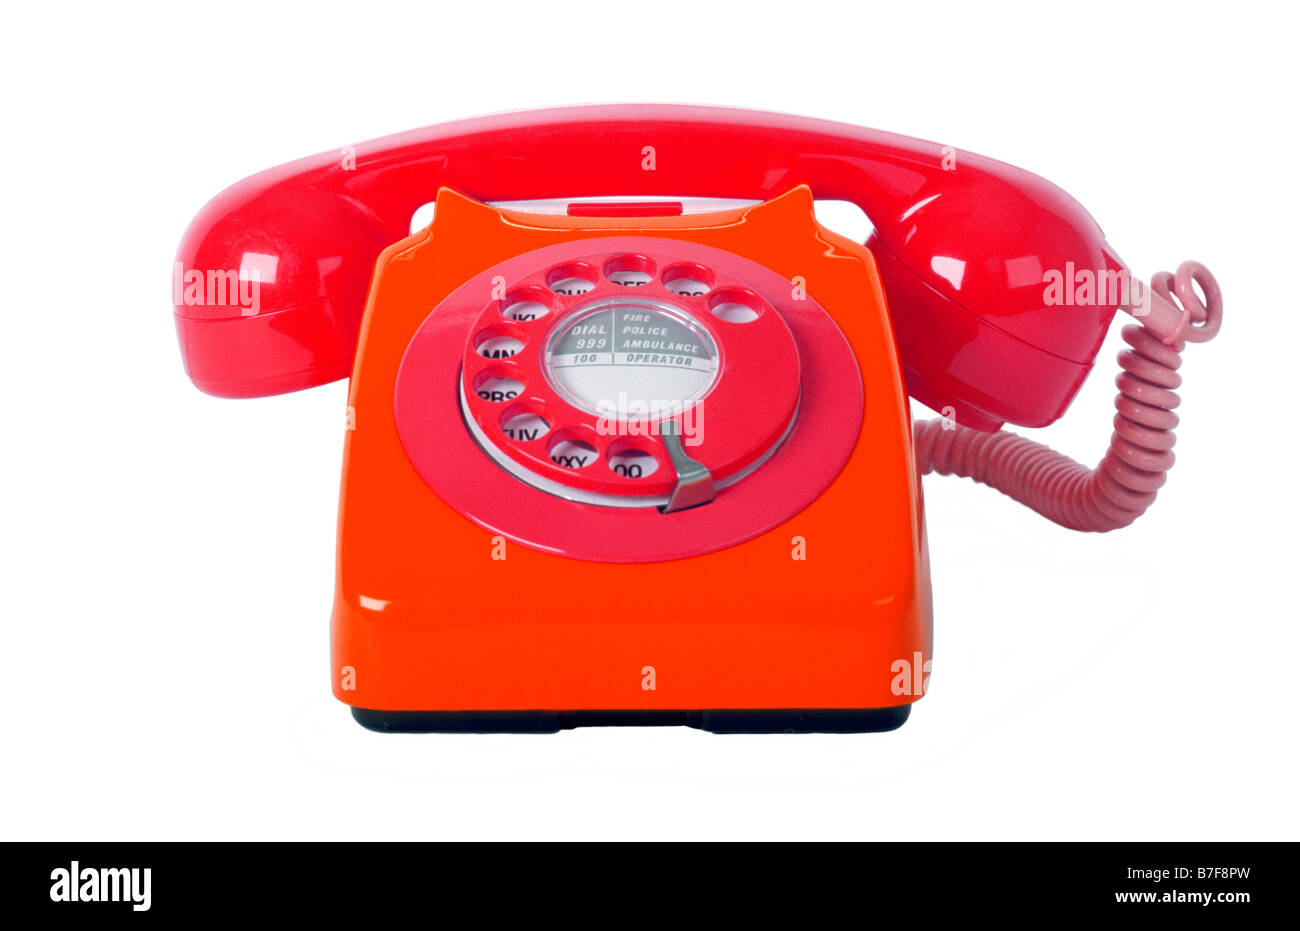 Traditional style 1970's 746 british telecom telephone on a pure white background. - Stock Image